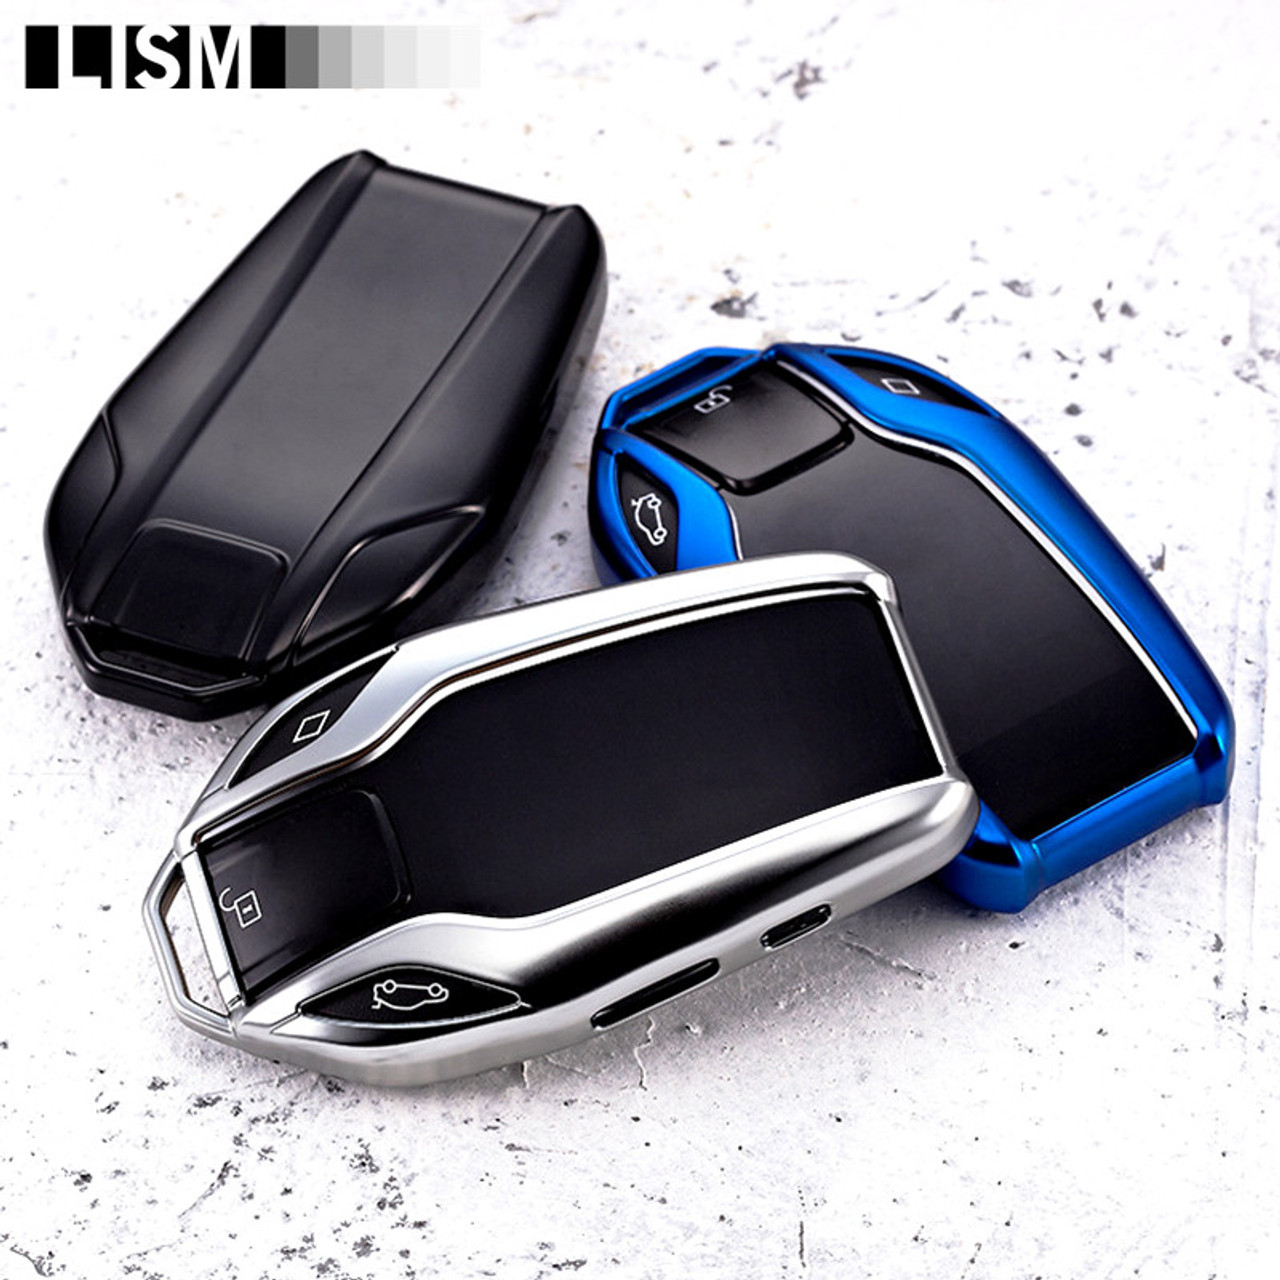 Remote Smart Car Key Case Cover For Bmw 7 Series New 730li 740li 750li 760li G11 G12 2016 2017 2018 Protective Shell Accessories In Key Case For Car From Automobiles Motorcycles On Aliexpress Com